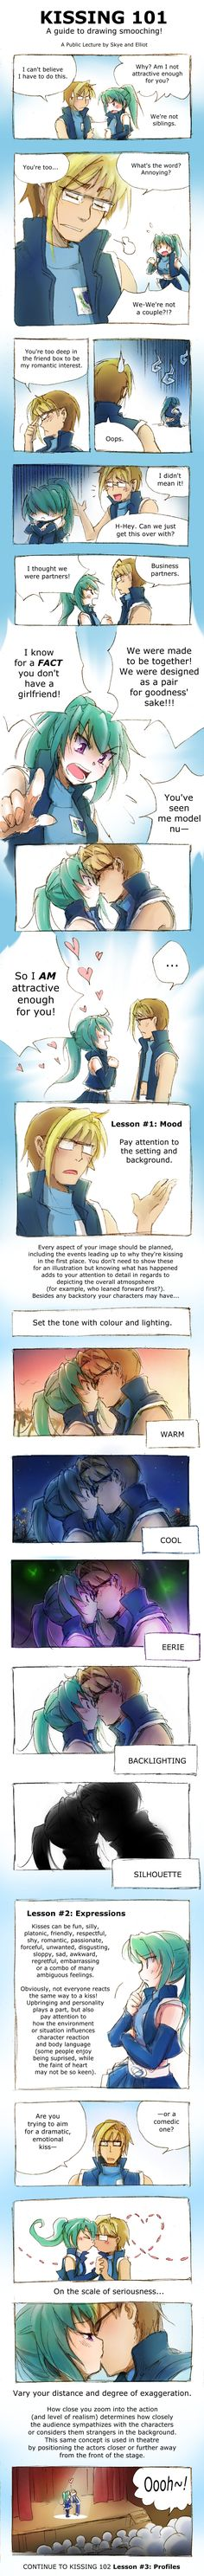 Great explanation about background lighting and drawing.. Kissing 101 by Achiru-et-al.deviantart.com